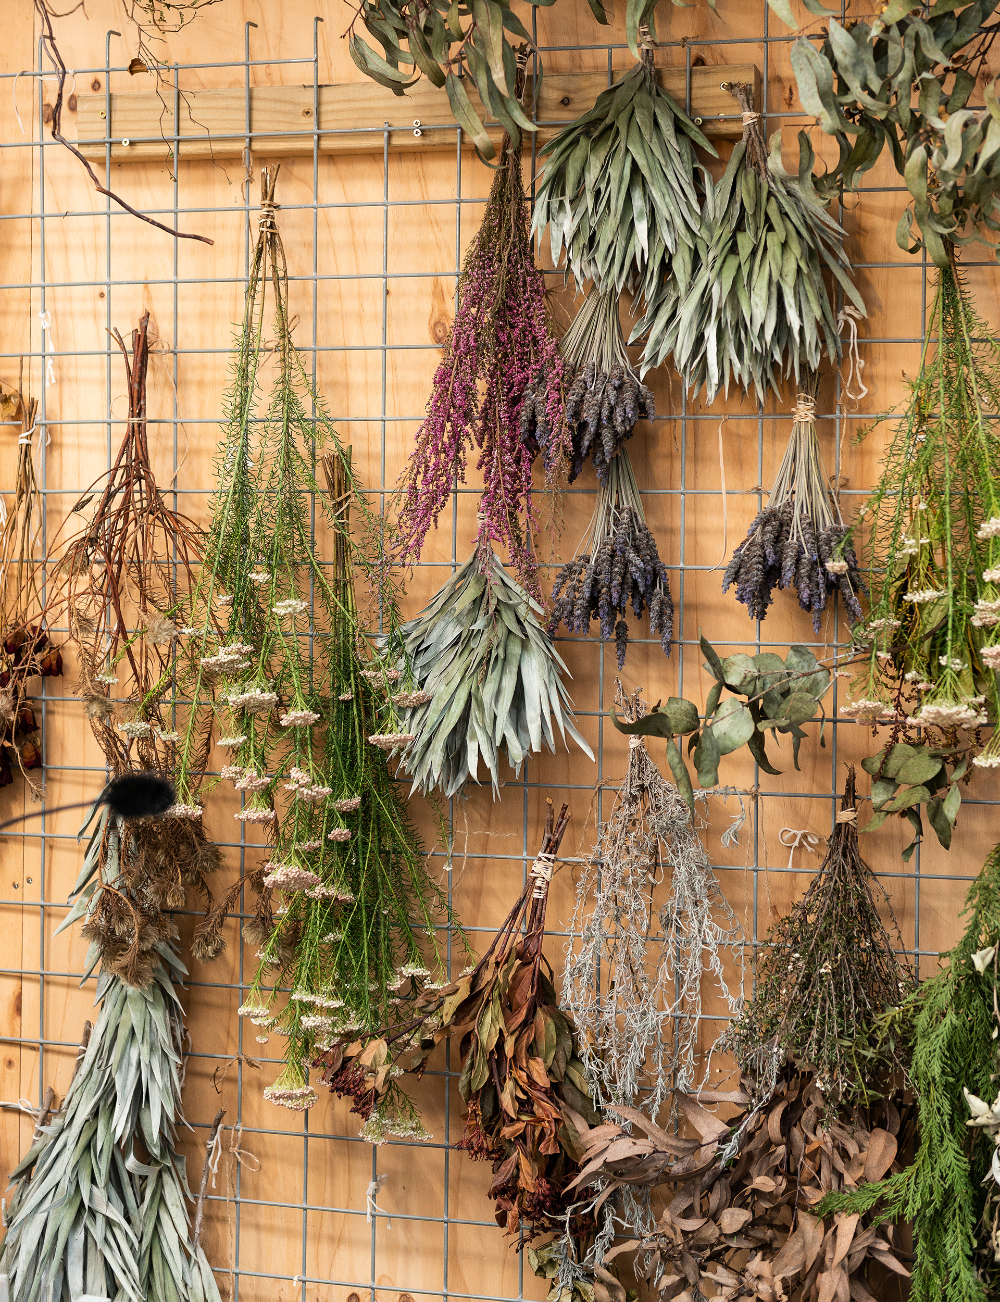 You'll be obsessed with dried flowers after seeing Mark Antonia's work #driedflowers